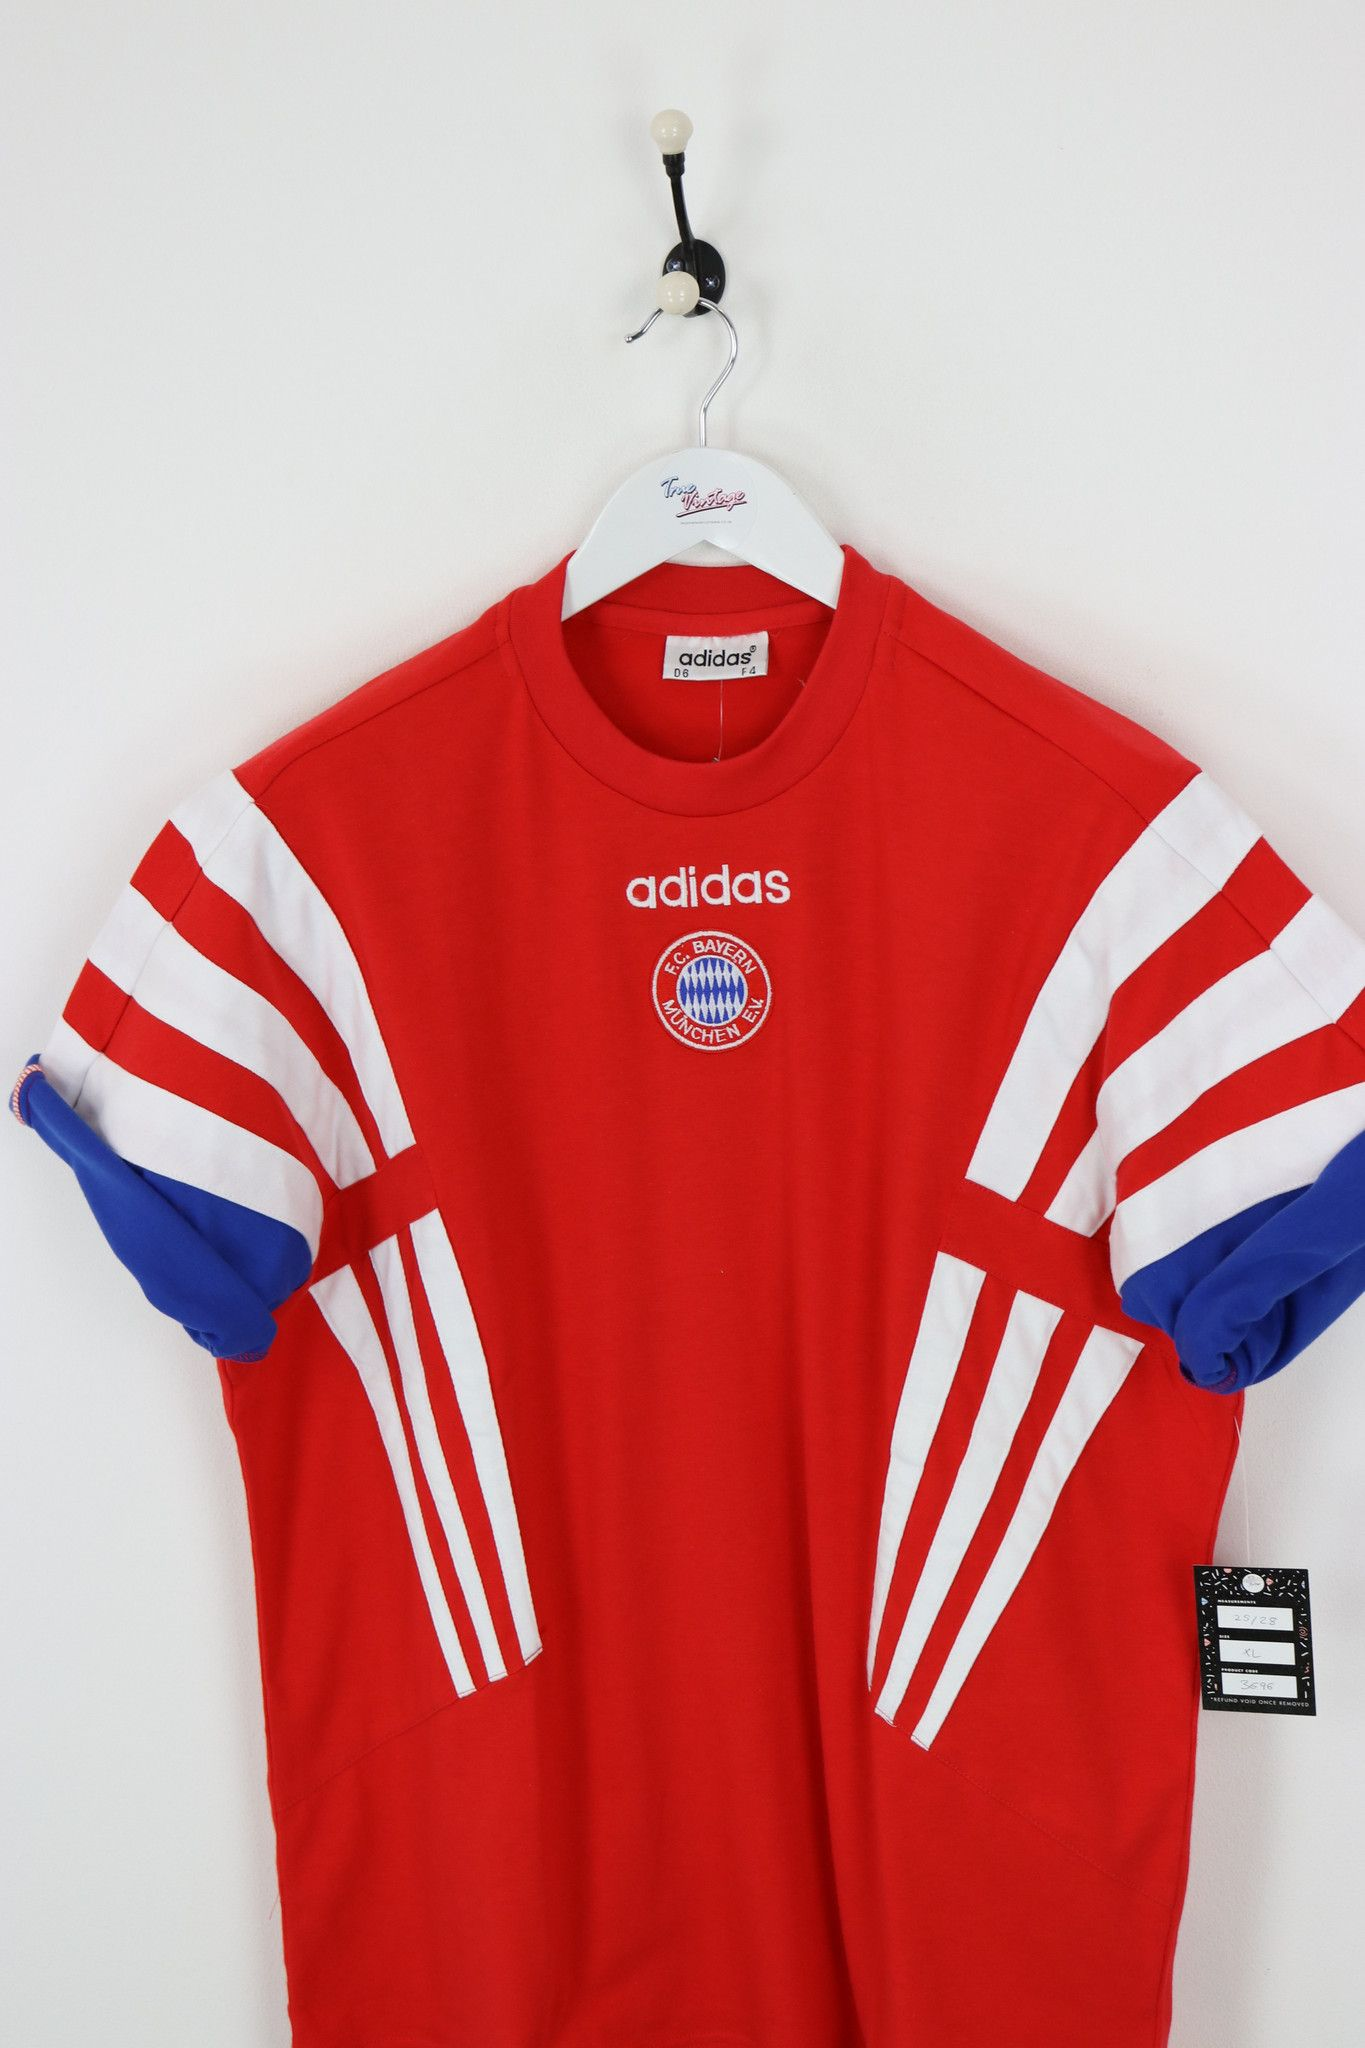 new with tags vintage adidas bayern munich t shirt. Black Bedroom Furniture Sets. Home Design Ideas